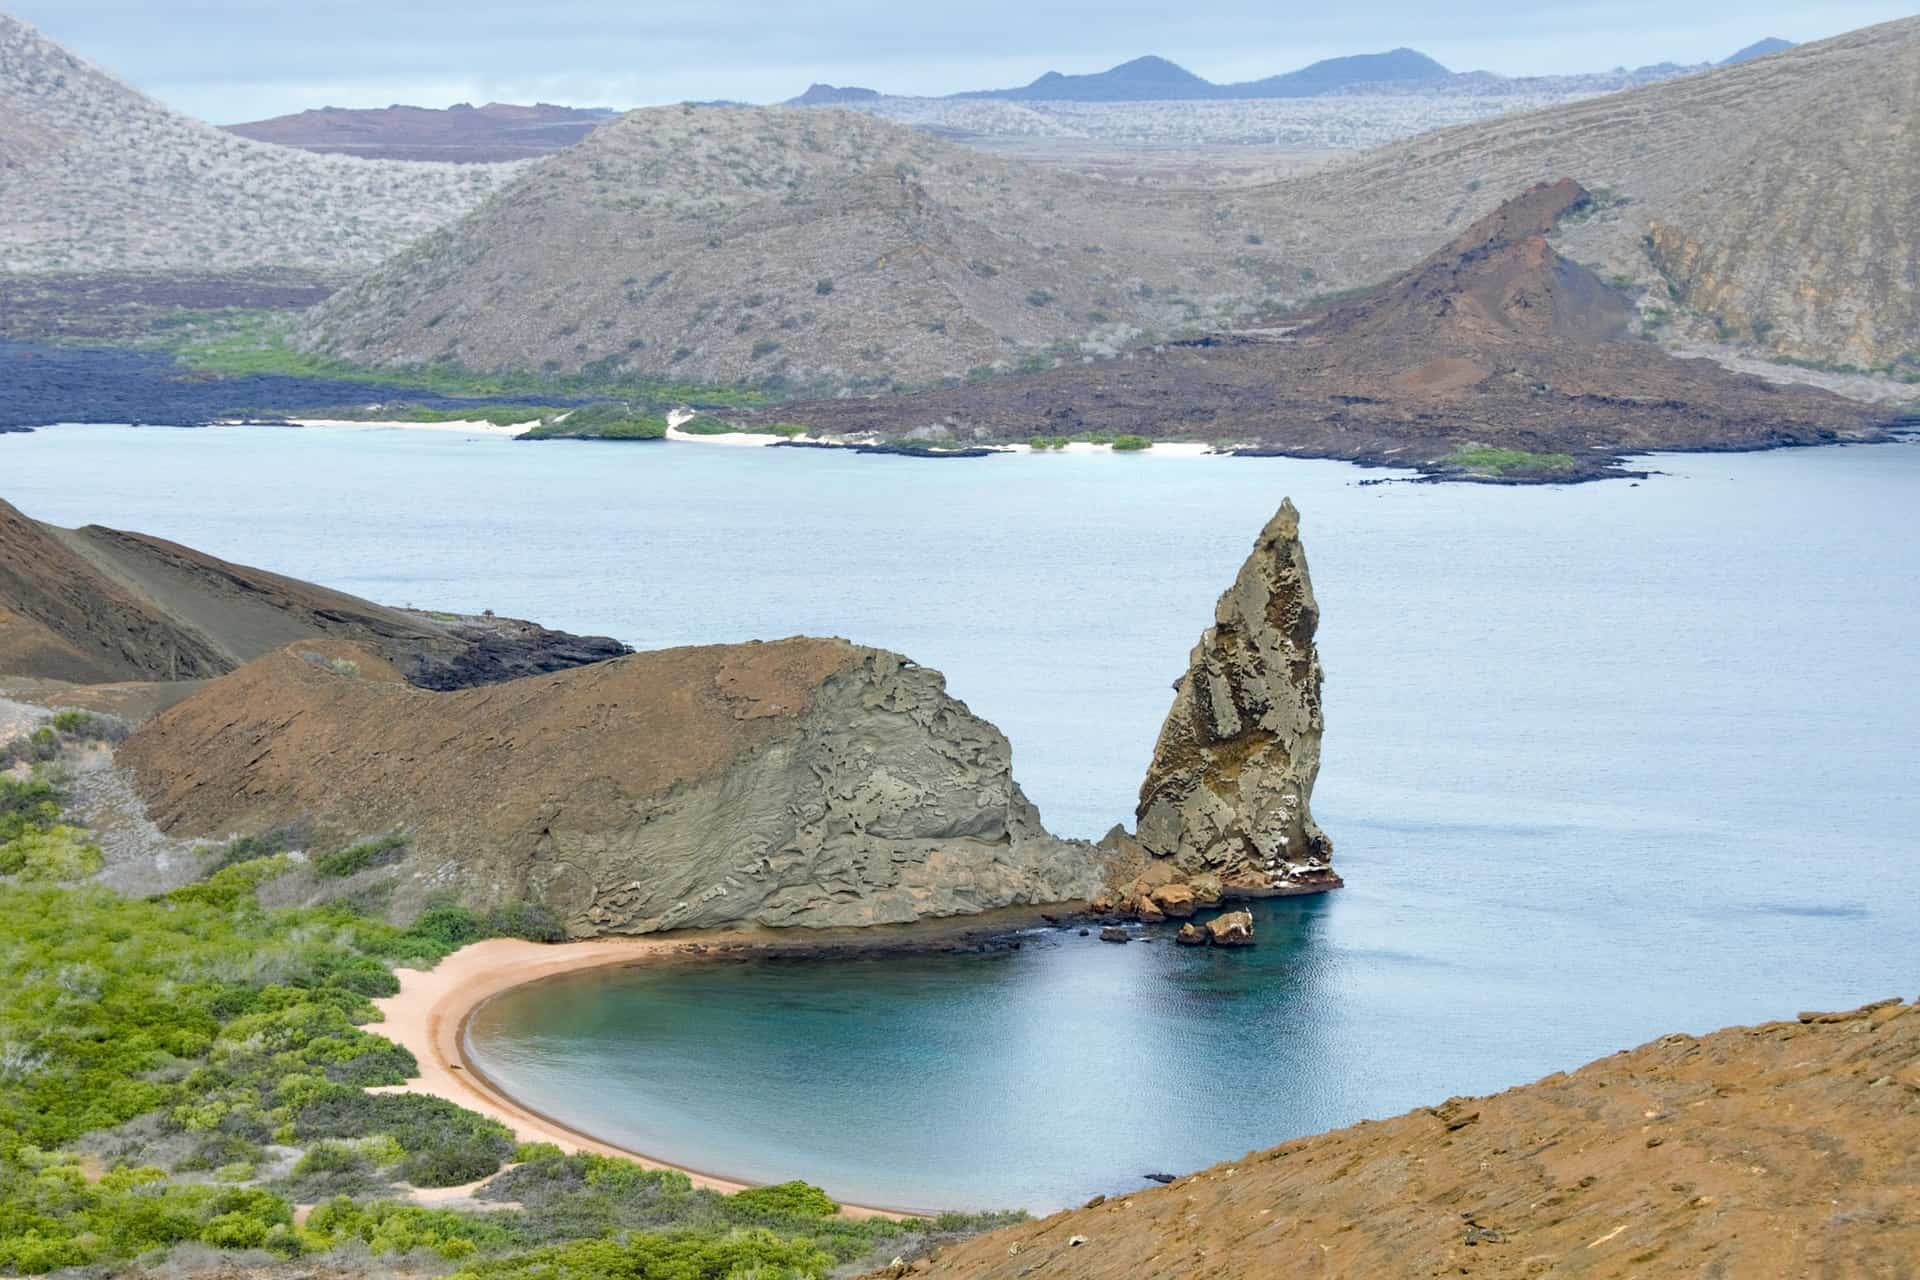 Galapagos Inselhopping ab 932,00€ pro Person Rundreise